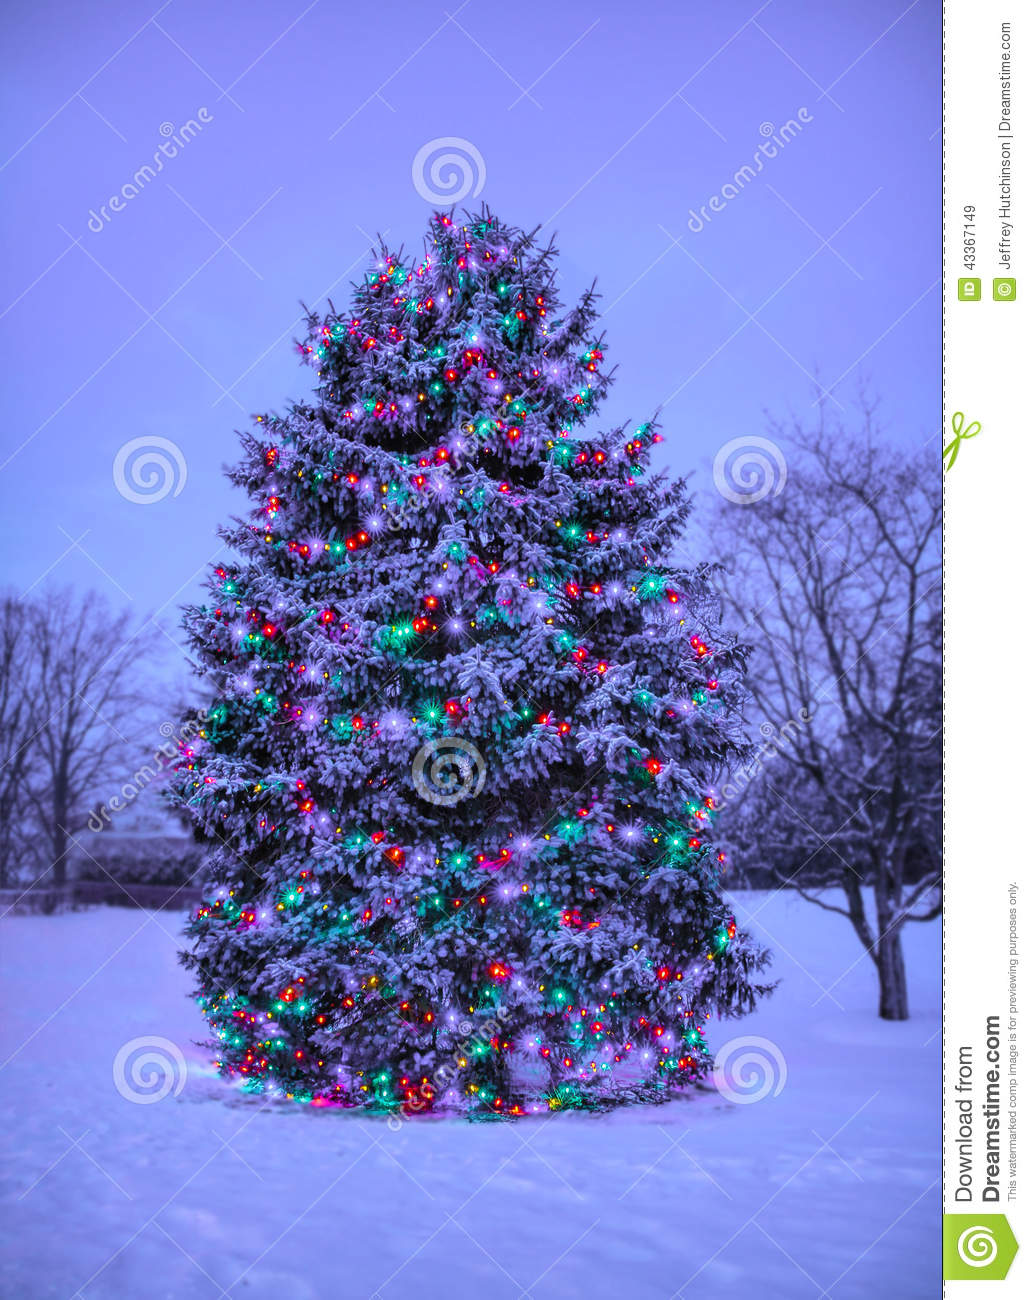 Christmas tree with lights outside in snow stock image